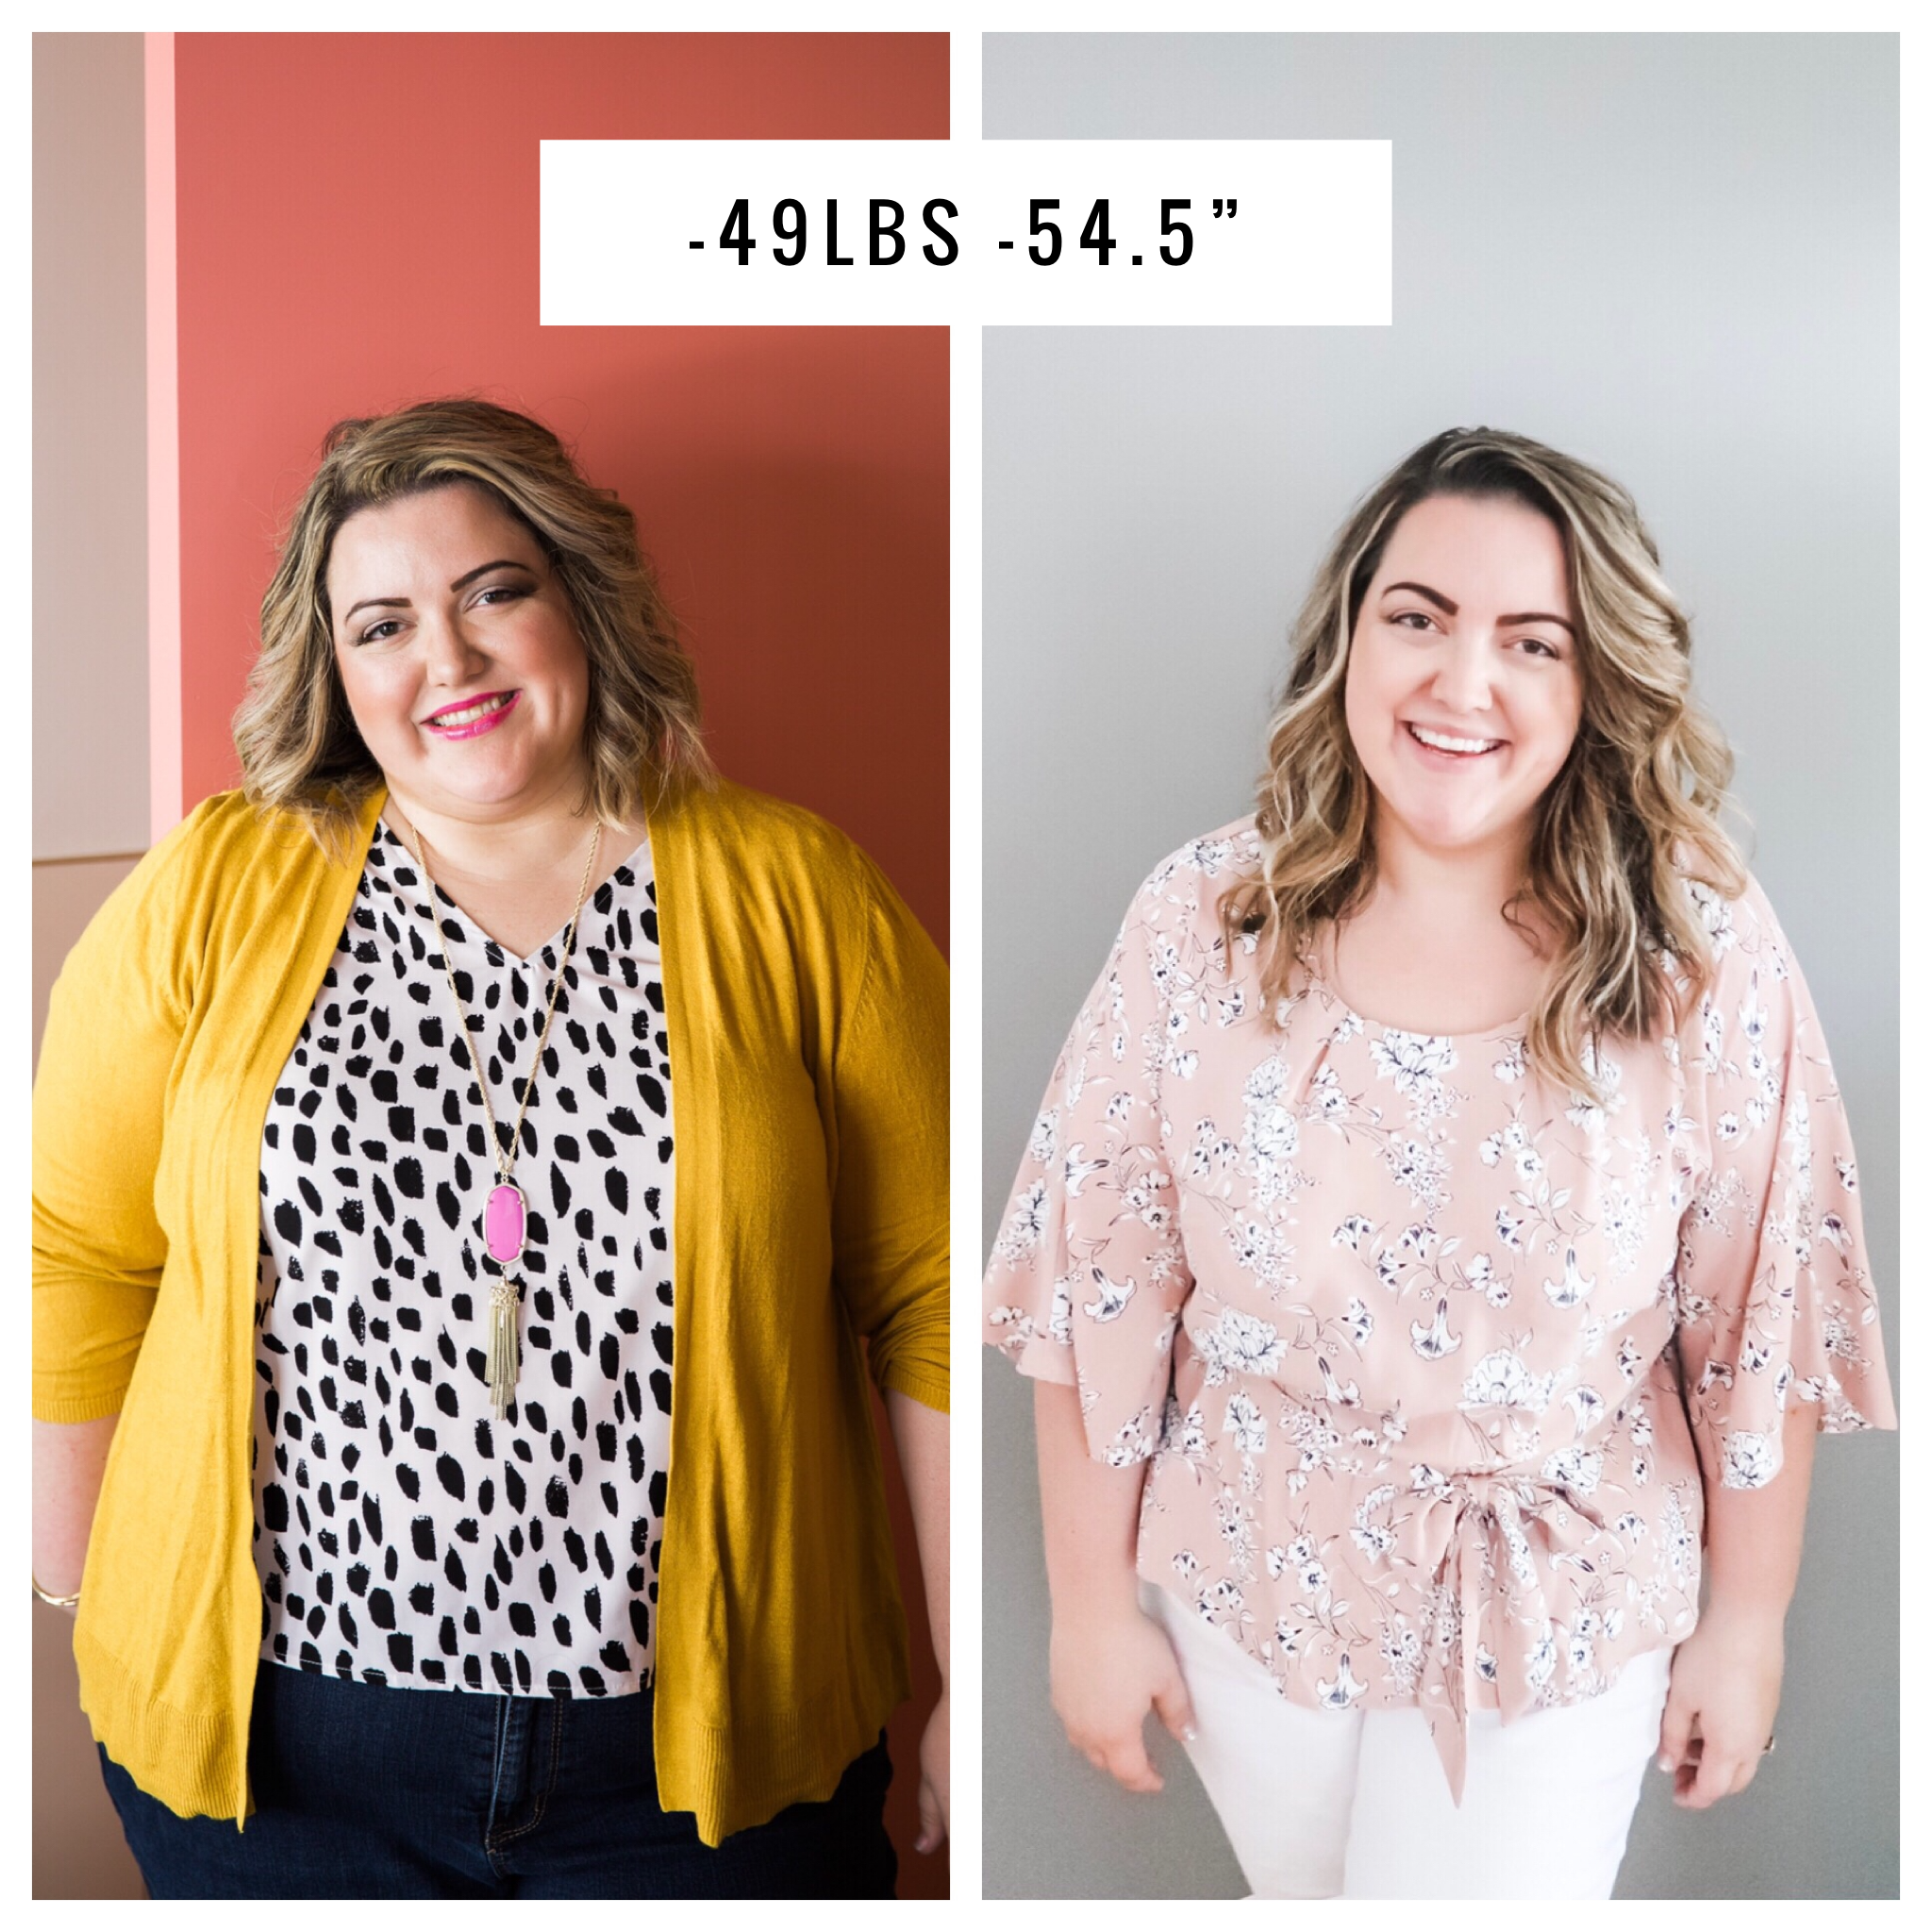 Abagail Pumphrey - Nearly 50 Pound Weight Loss in 6 Months